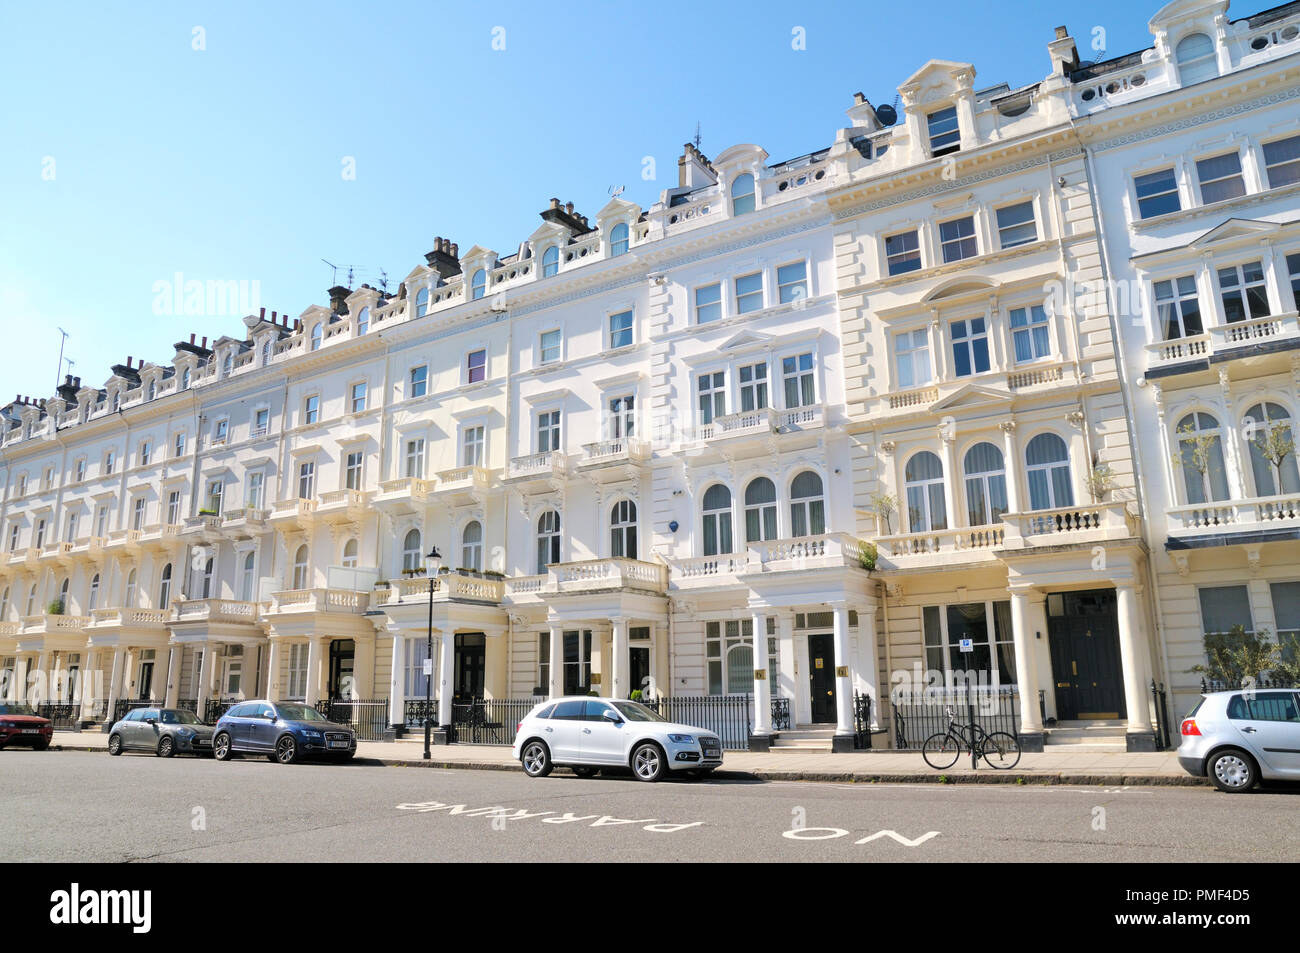 Queens Gate Terrace, South Kensington, Royal Borough of Kensington and Chelsea, London SW7, England, UK - Stock Image